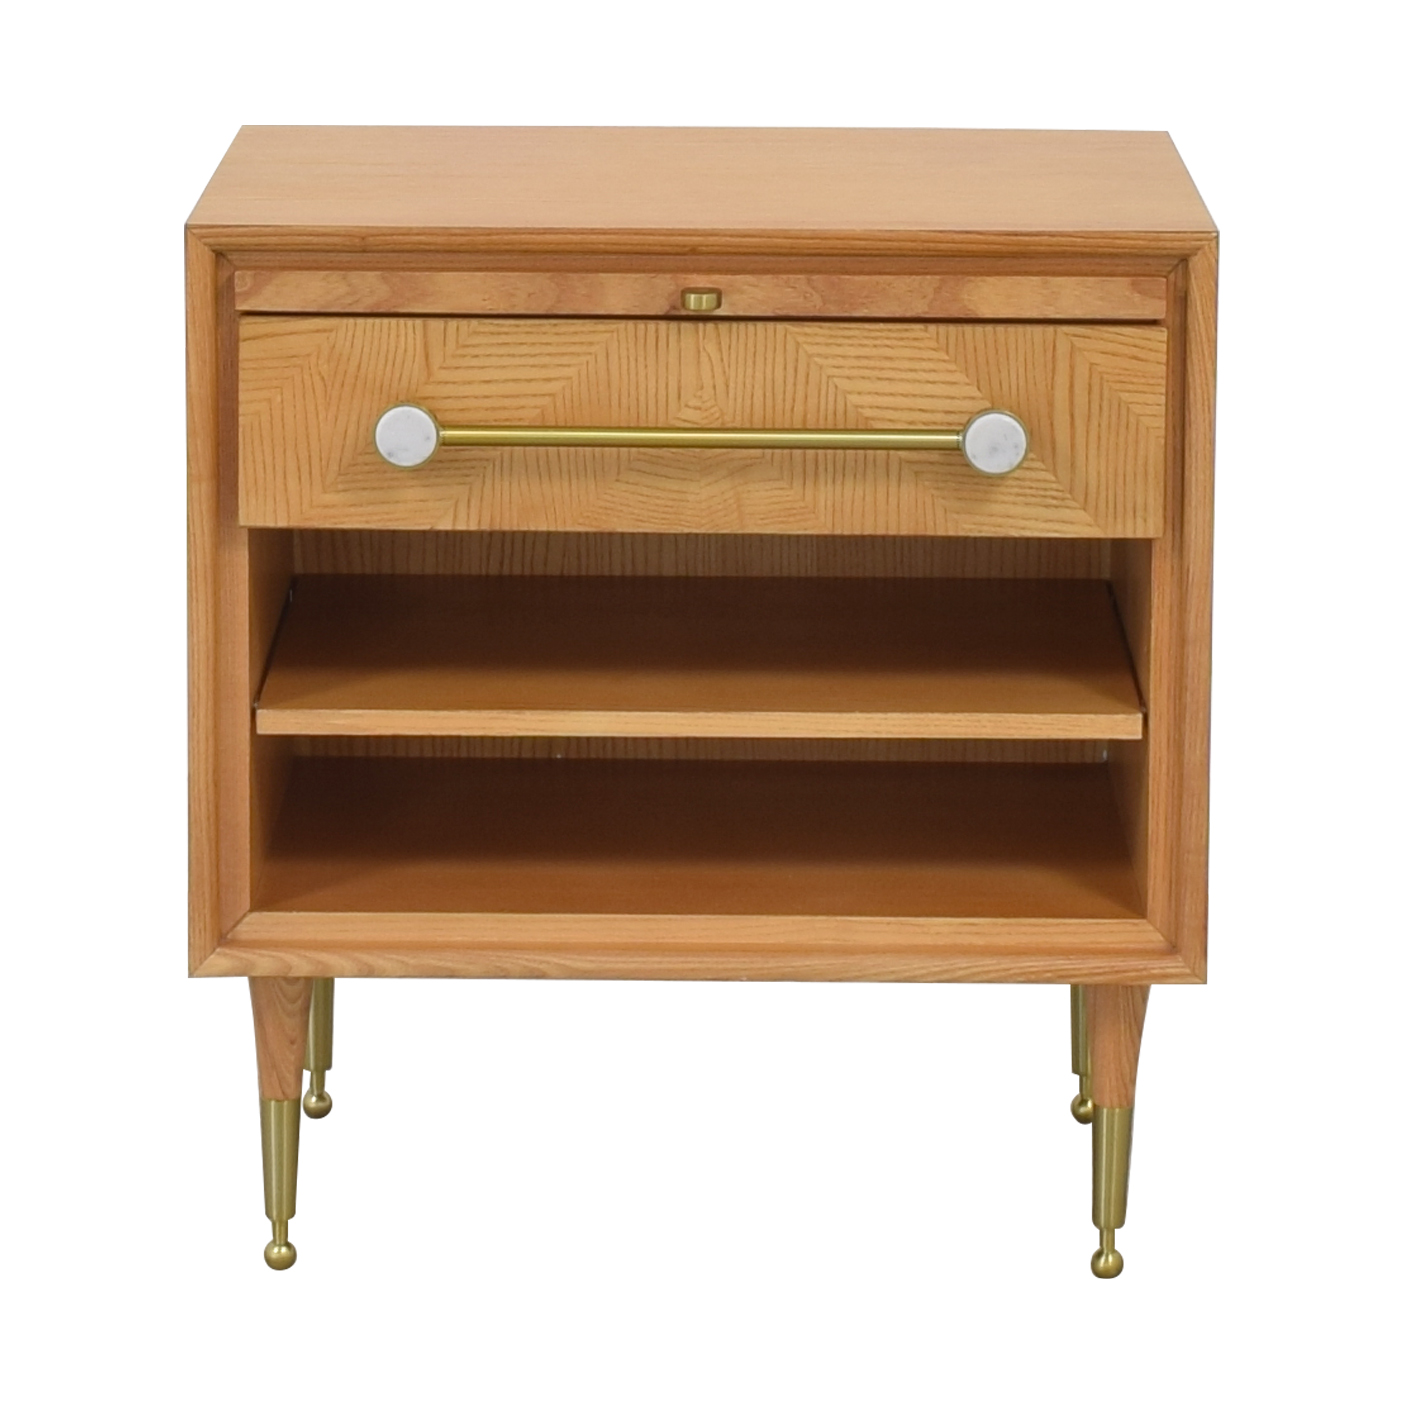 Anthropologie Anthropologie Nelson Storage Nightstand used